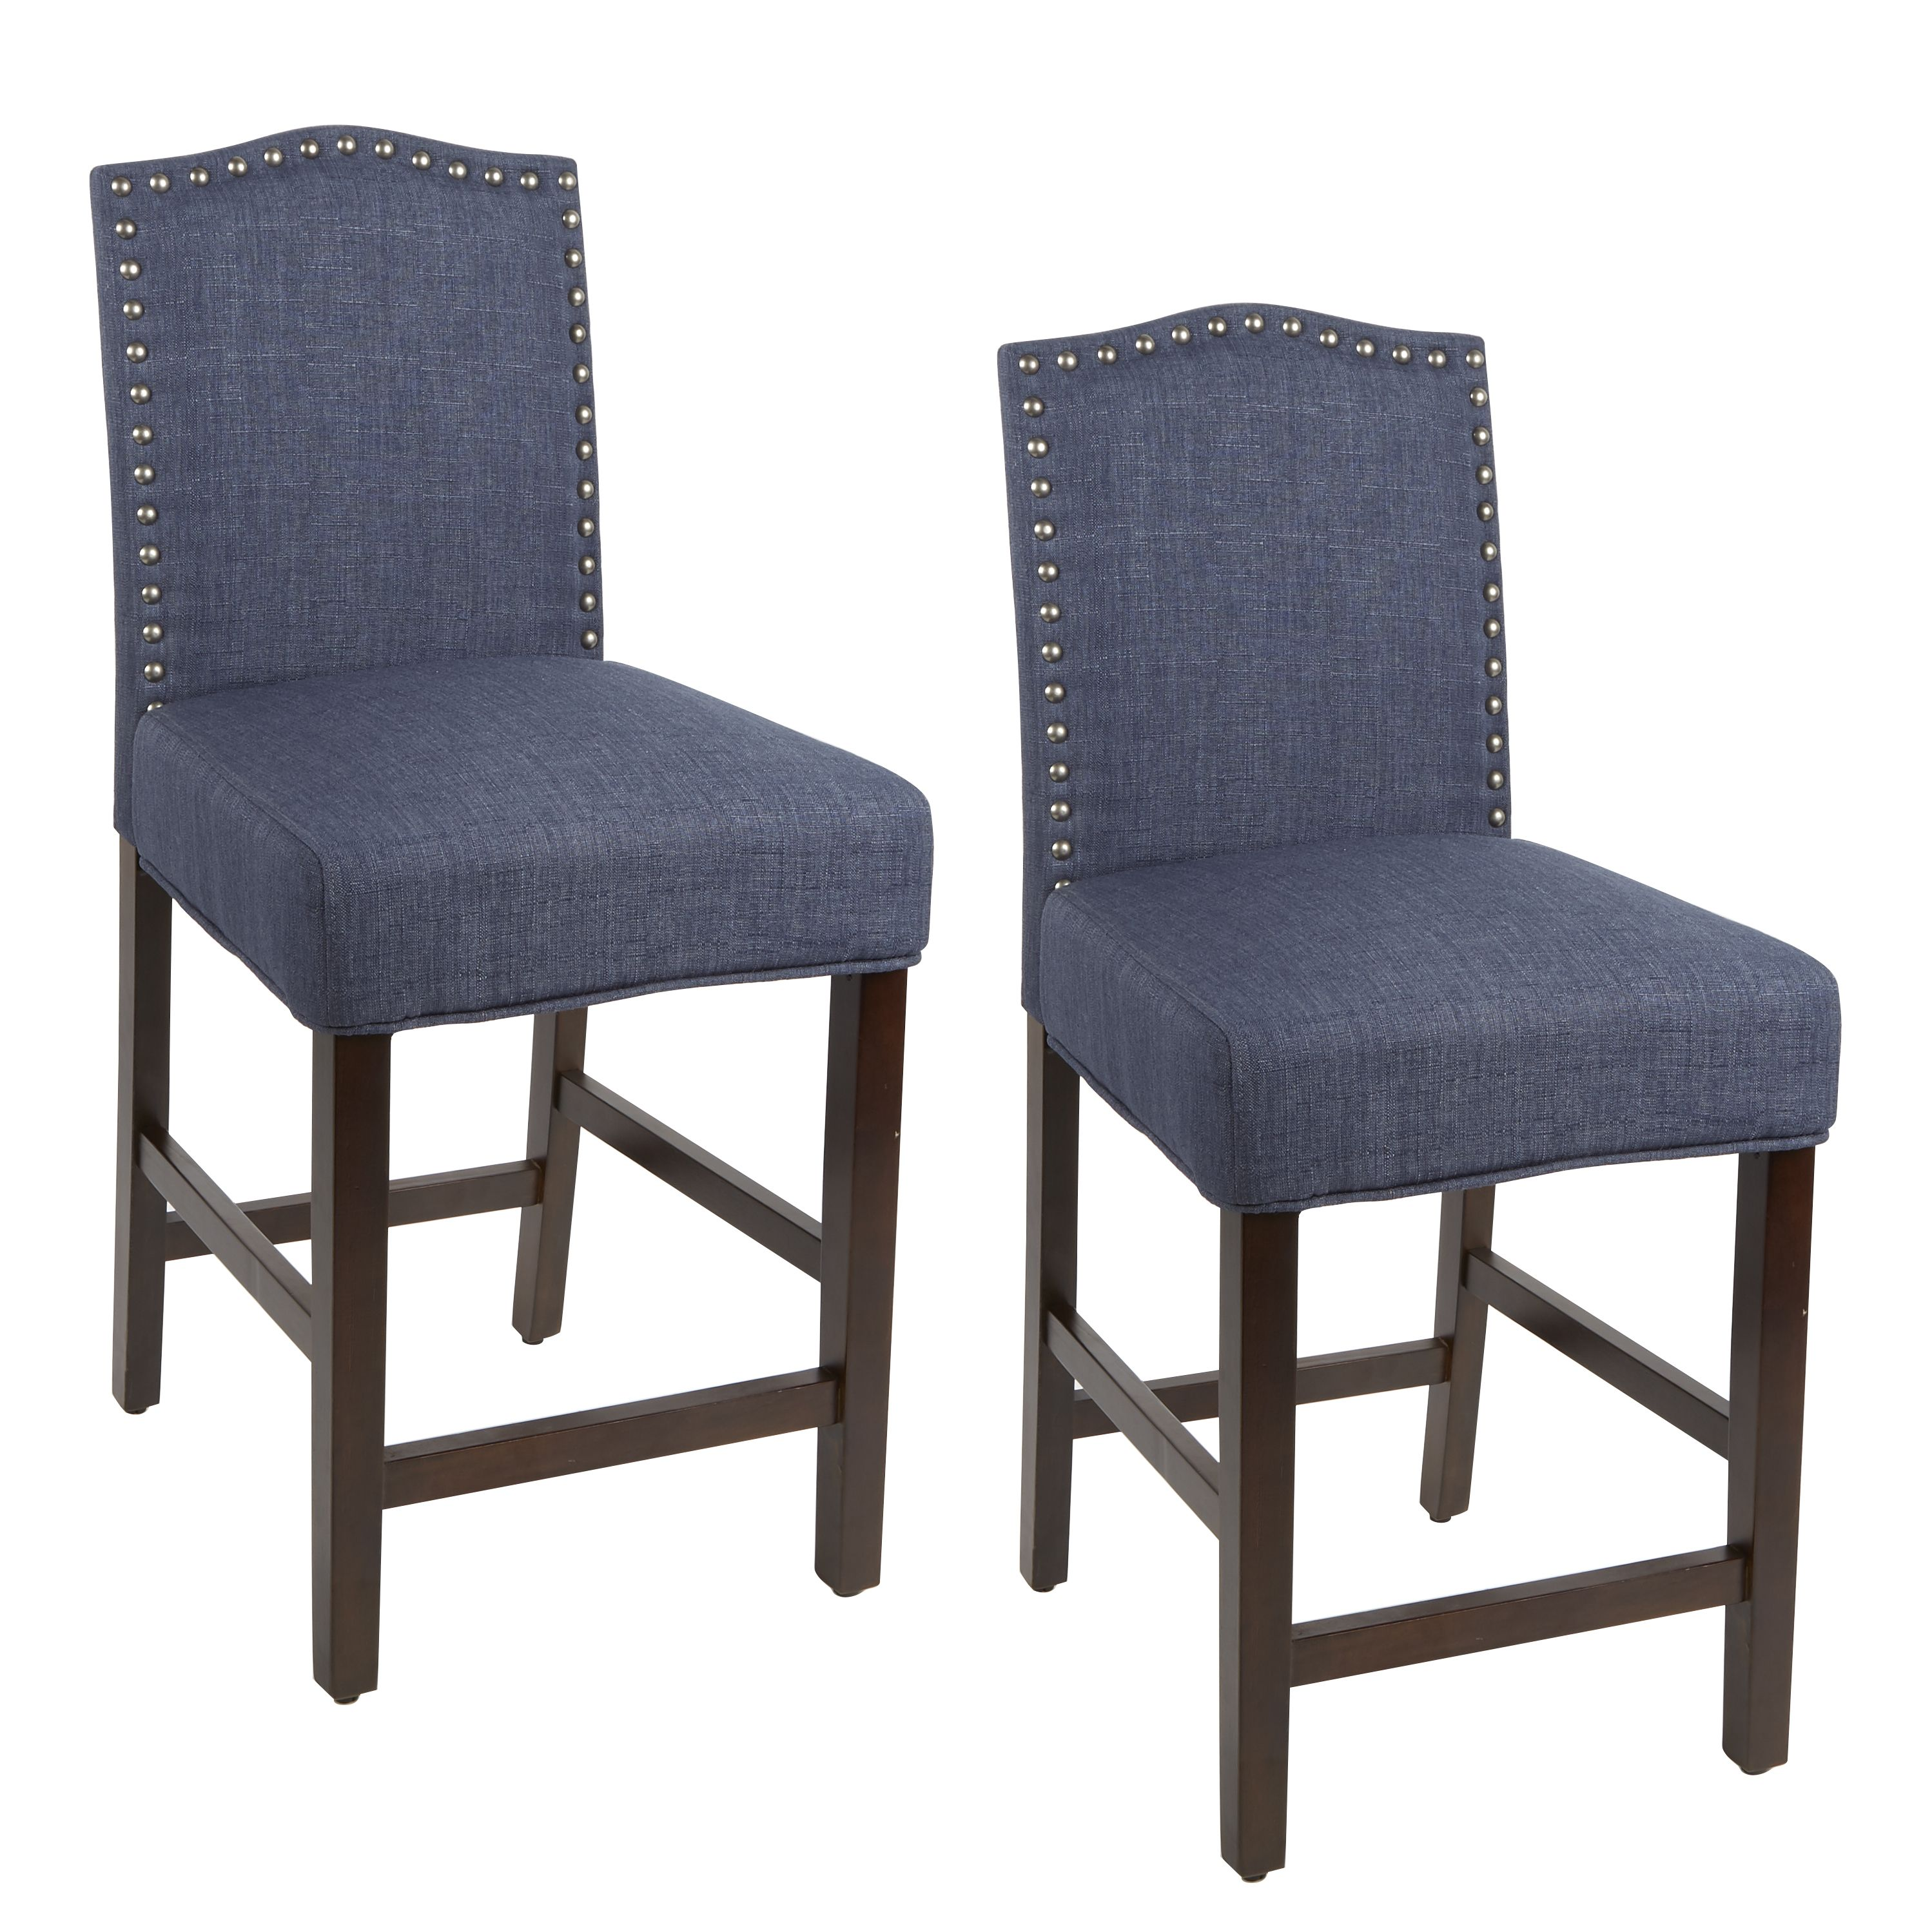 6cefa76432f04f906f31a37f3bd87eb2 - Better Homes And Gardens Counter Stools